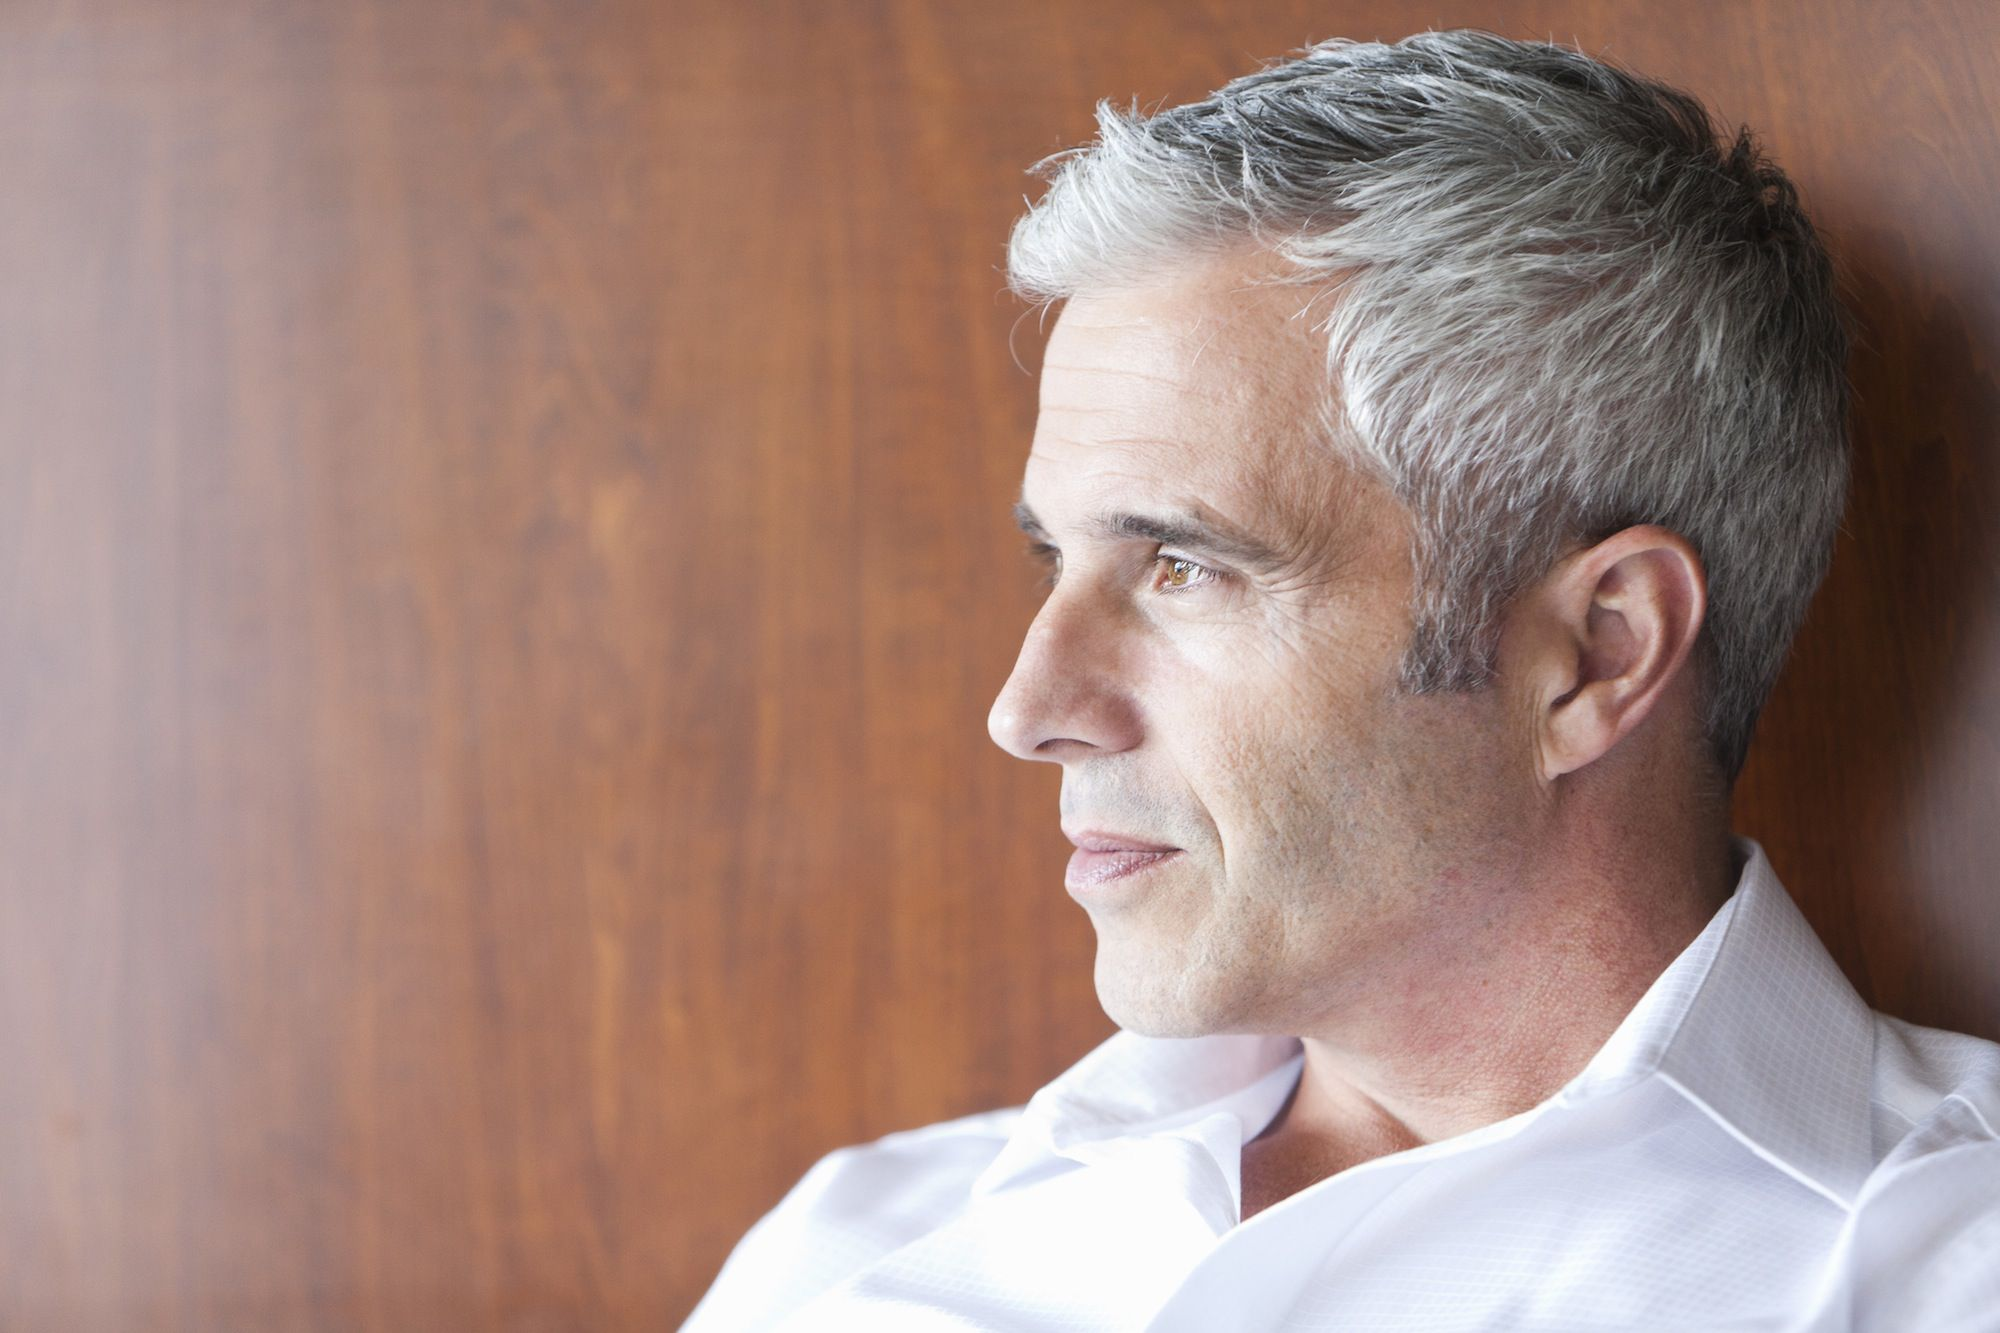 Things to Consider Before Coloring Gray Hair for Men